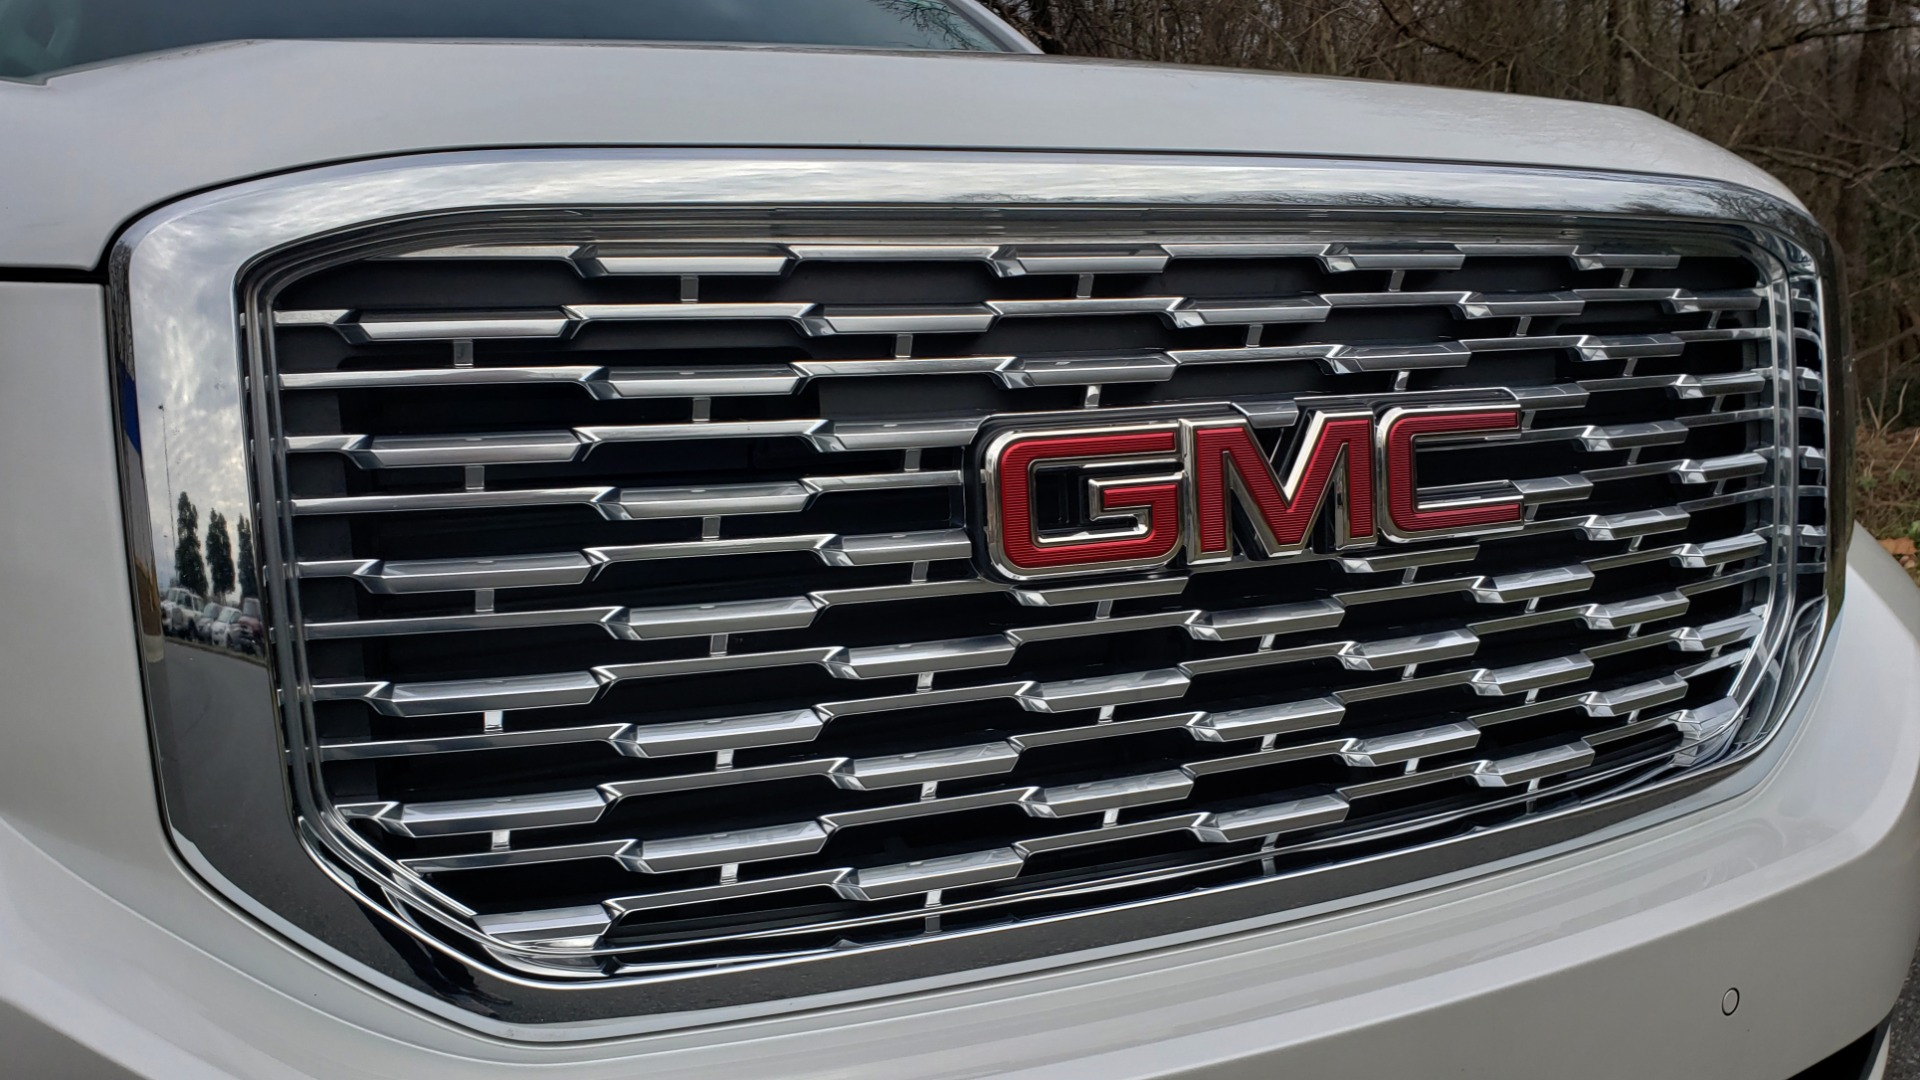 Used 2018 GMC YUKON DENALI 4WD / NAV / SUNROOF / BOSE / 3-ROW / REARVIEW for sale Sold at Formula Imports in Charlotte NC 28227 14